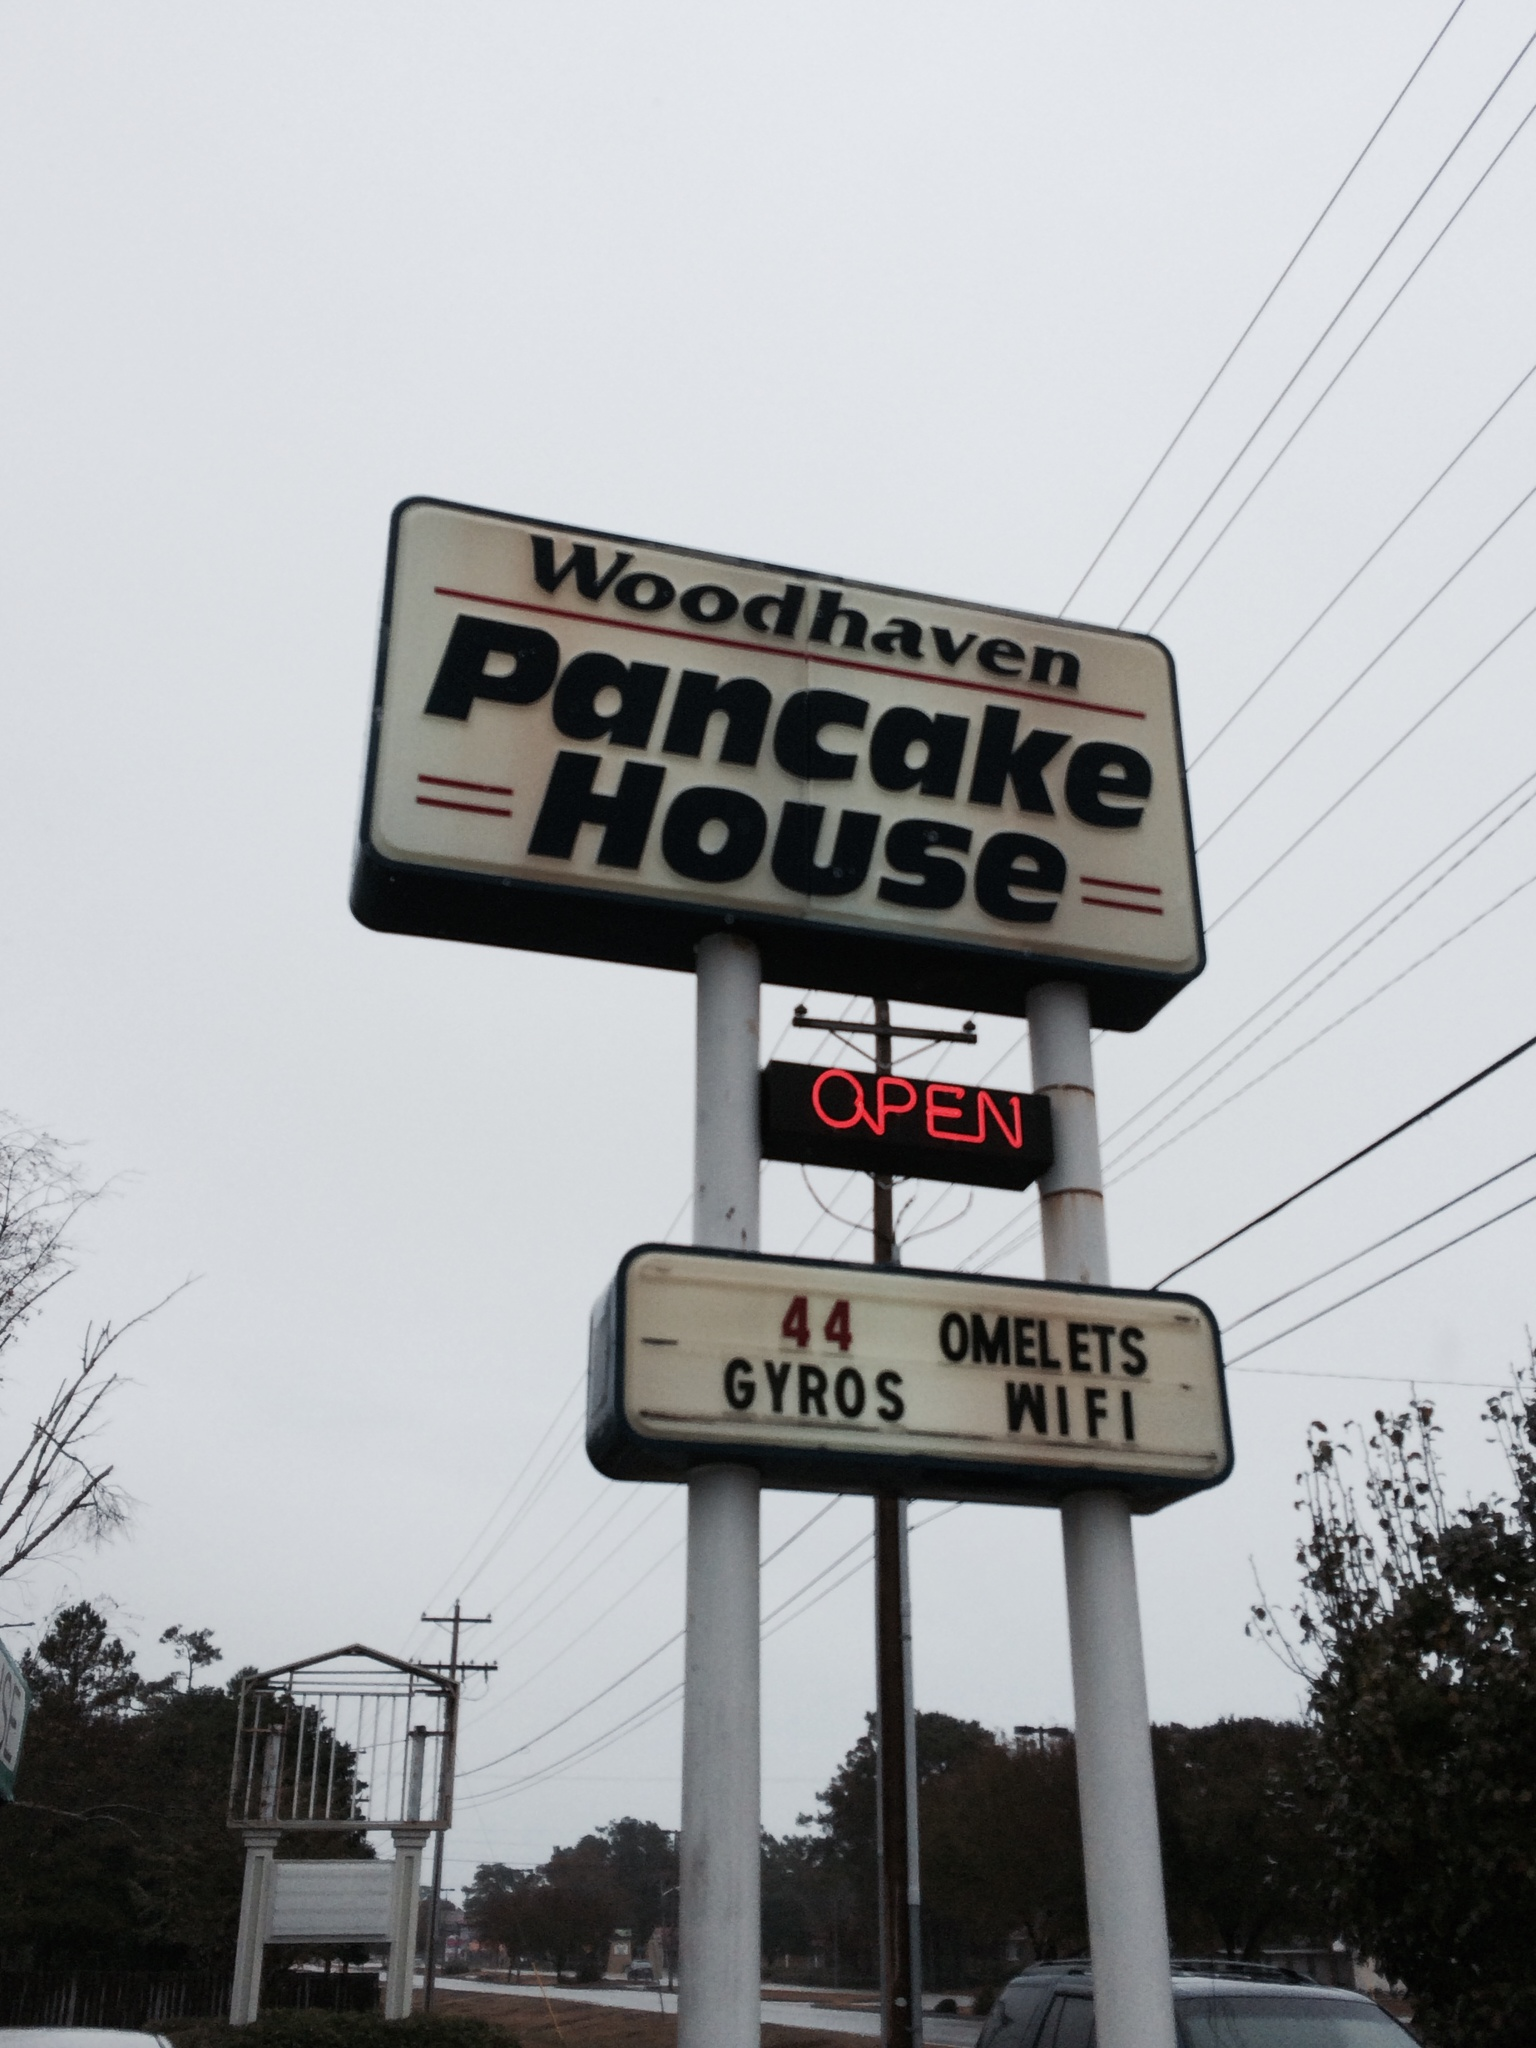 Pancake Houses are all over Myrtle Beach. This is Woodhavens Pancake House.